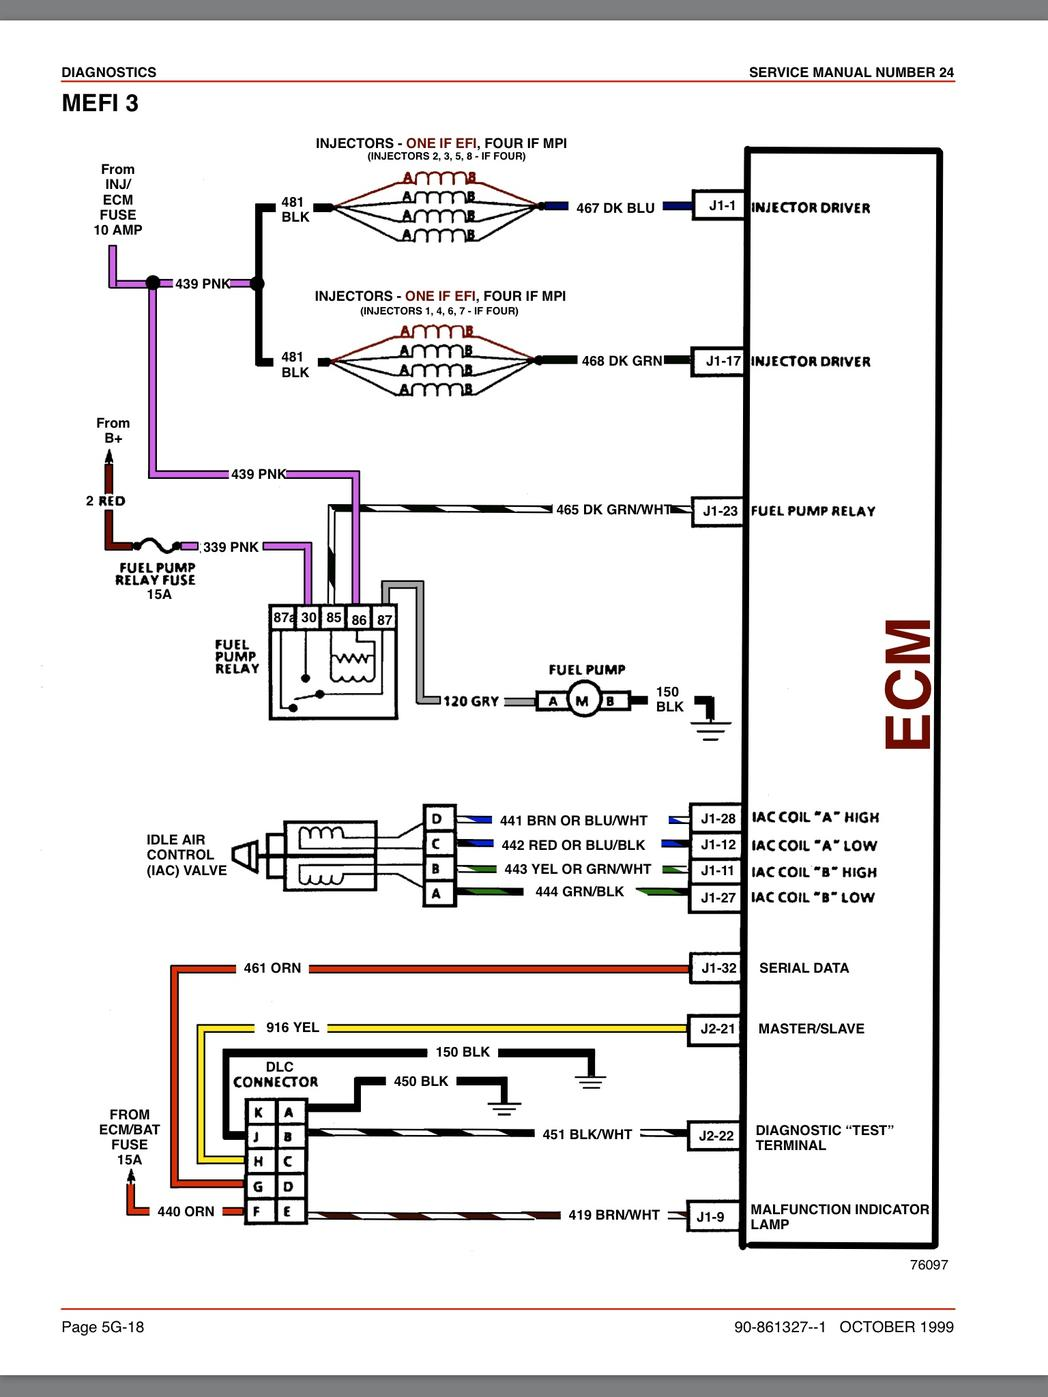 Mefi 4 Wiring Diagram from static-assets.imageservice.cloud